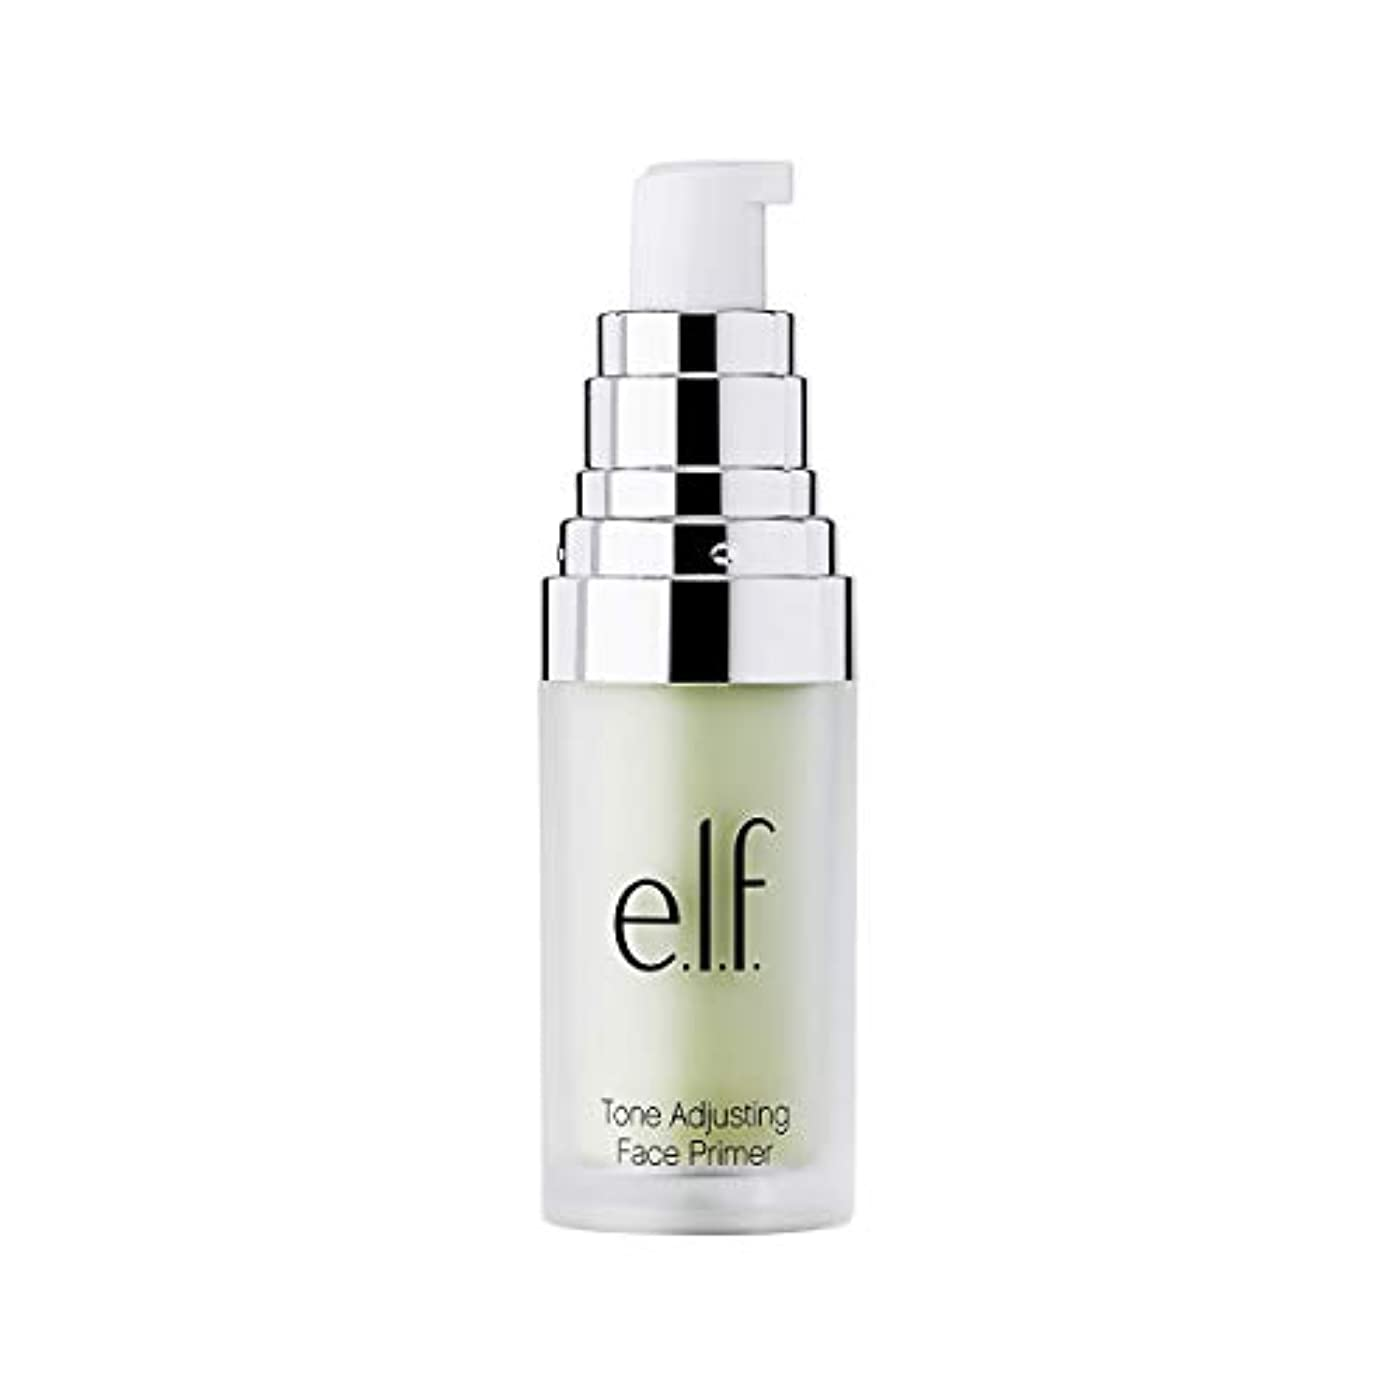 ベルベット帝国羊の服を着た狼e.l.f. Studio Mineral Infused Face Primer - Tone Adjusting Green (並行輸入品)